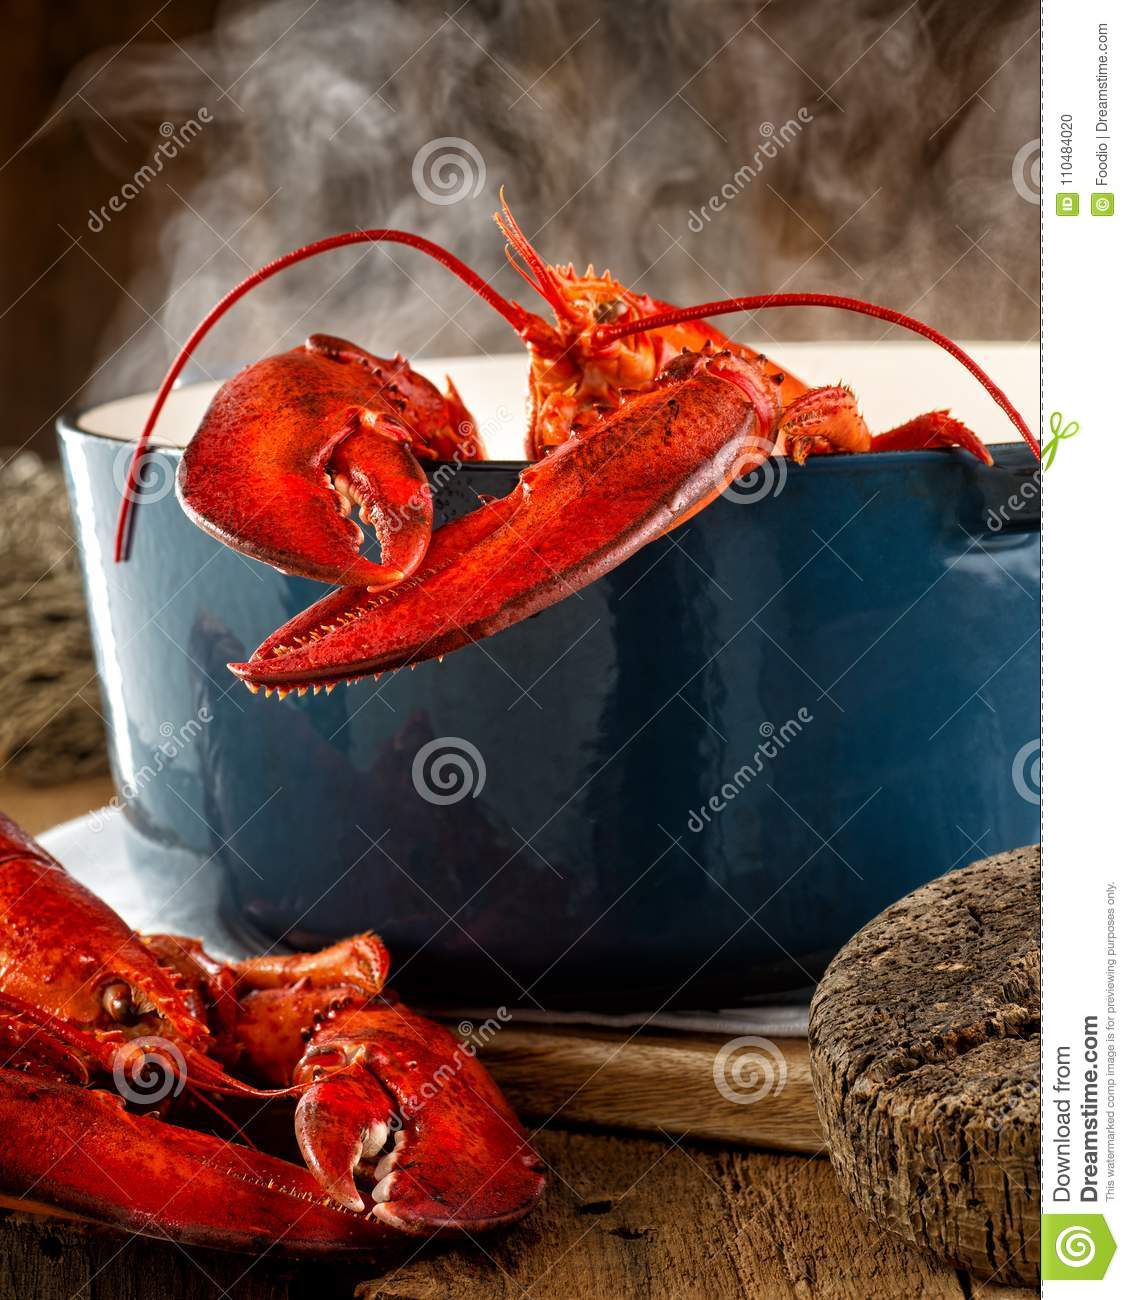 Lobster Steaming in a Pot